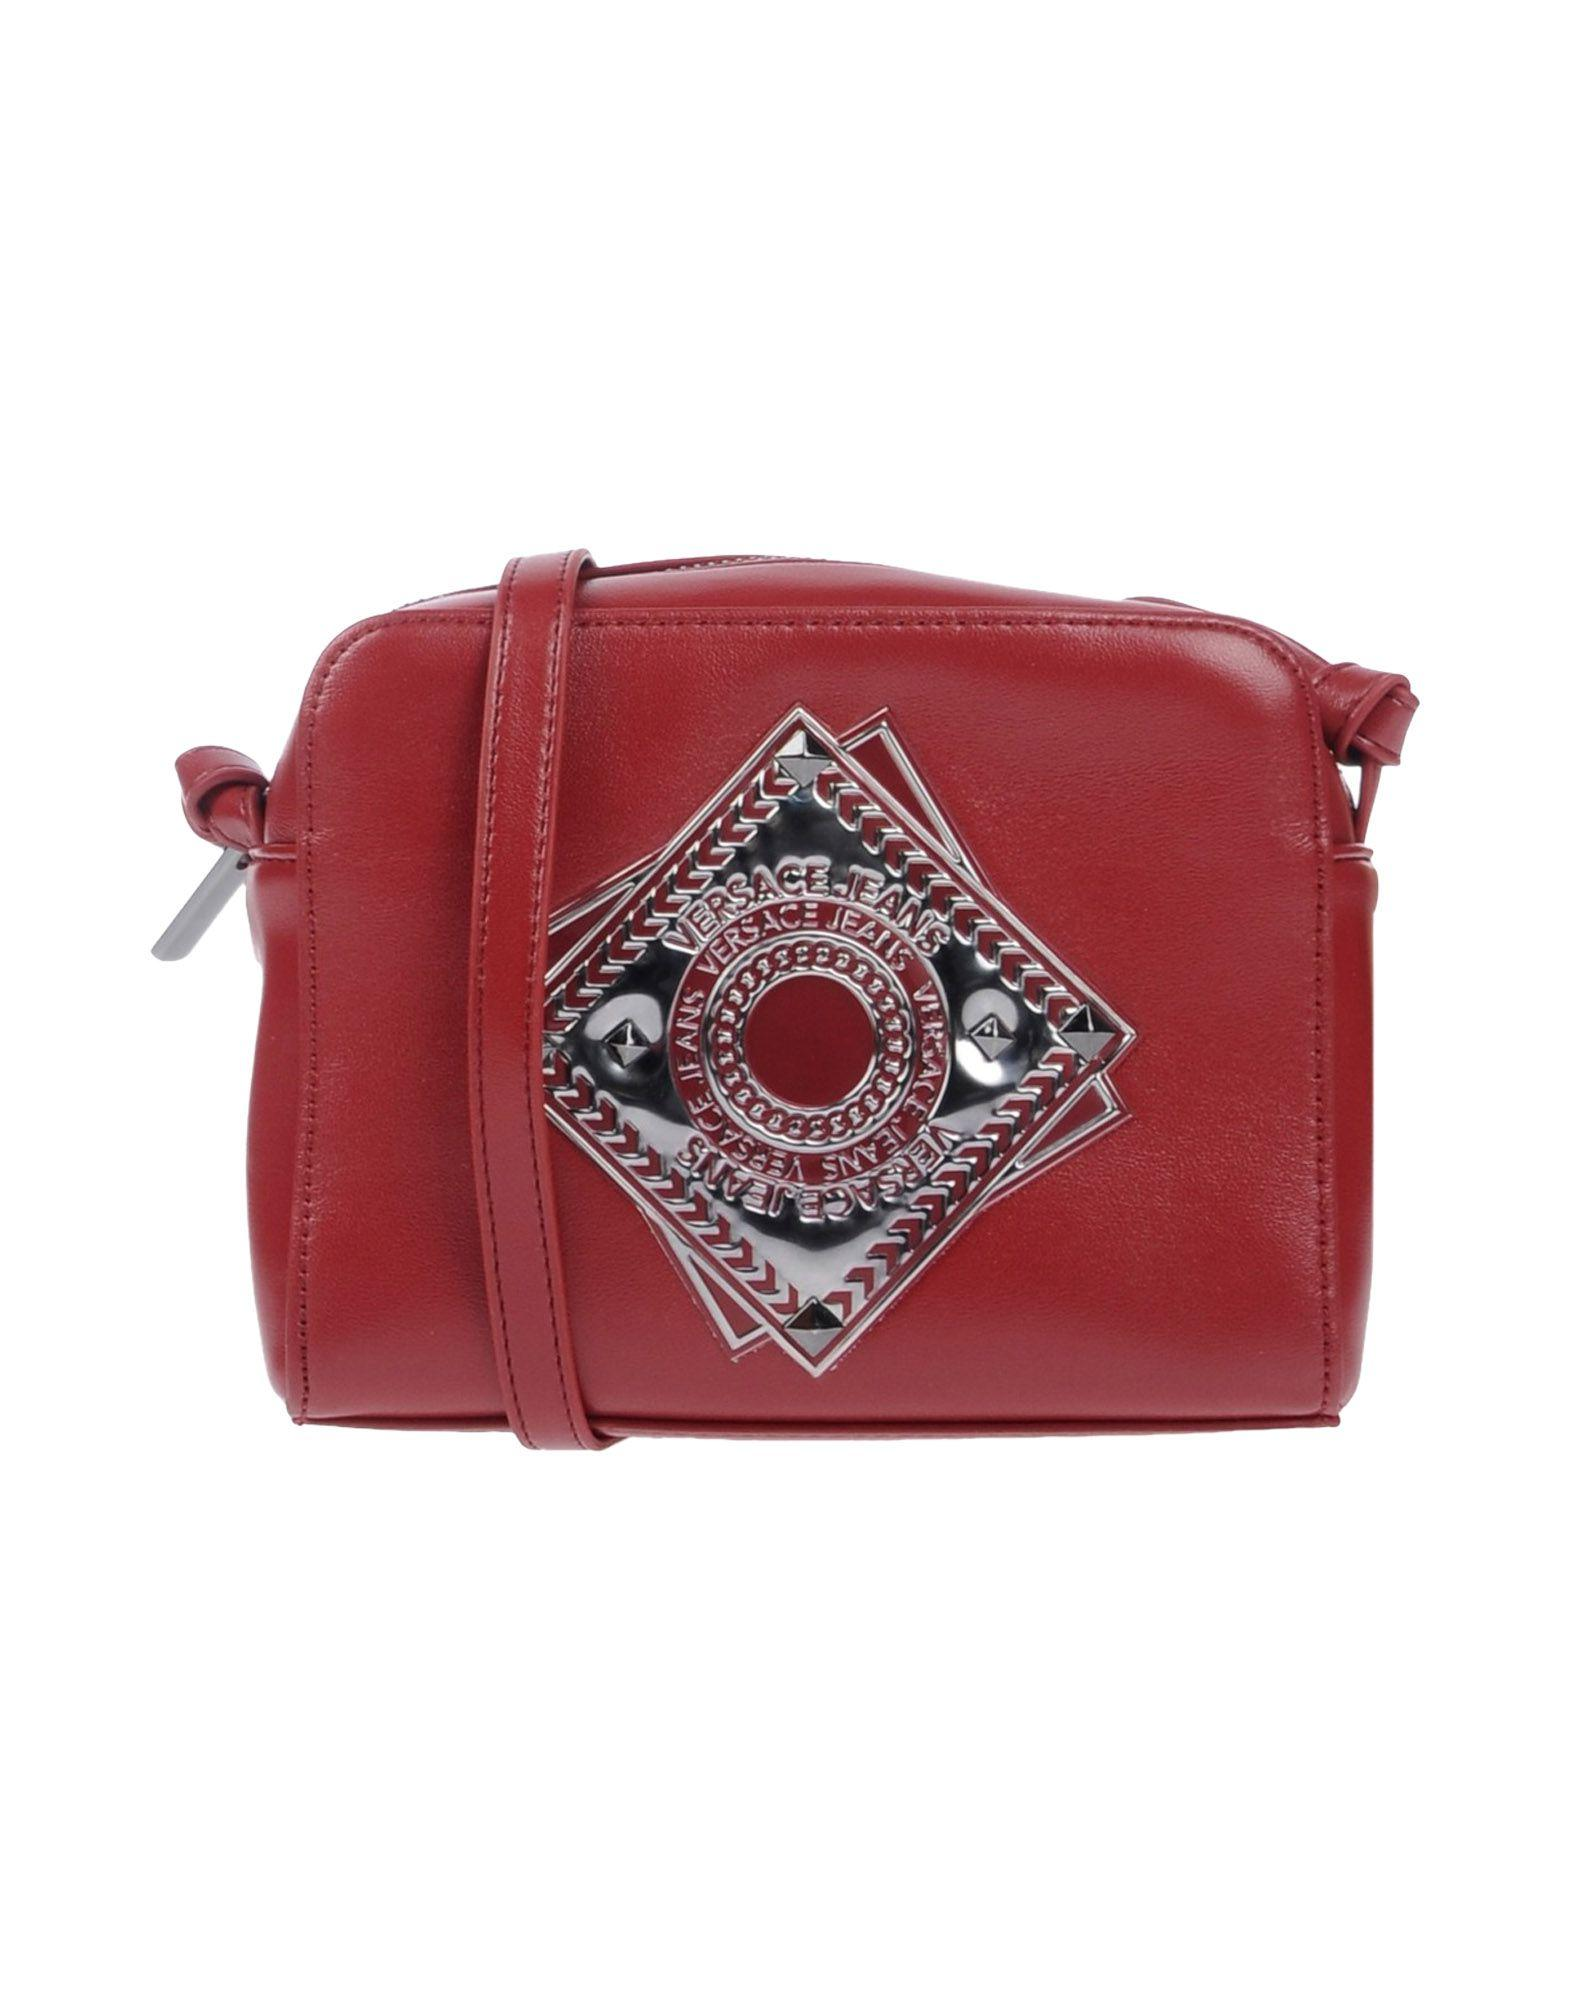 bf72ae9968 Versace Jeans Handbags In Red | ModeSens